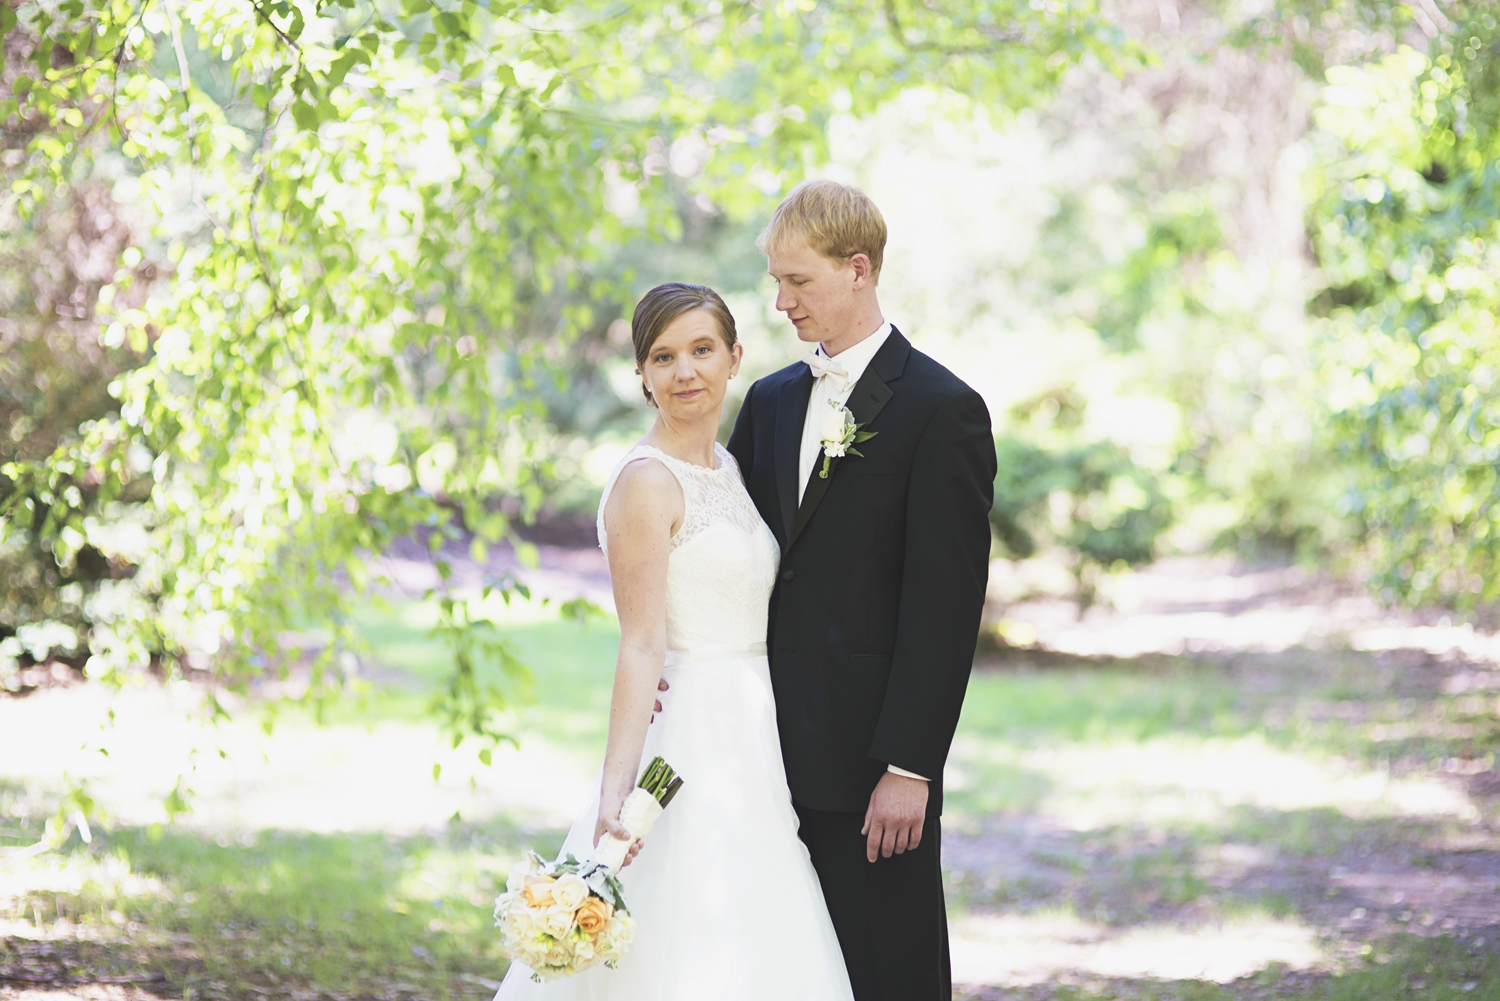 William and Mary Wedding |   First look bride & groom portraits